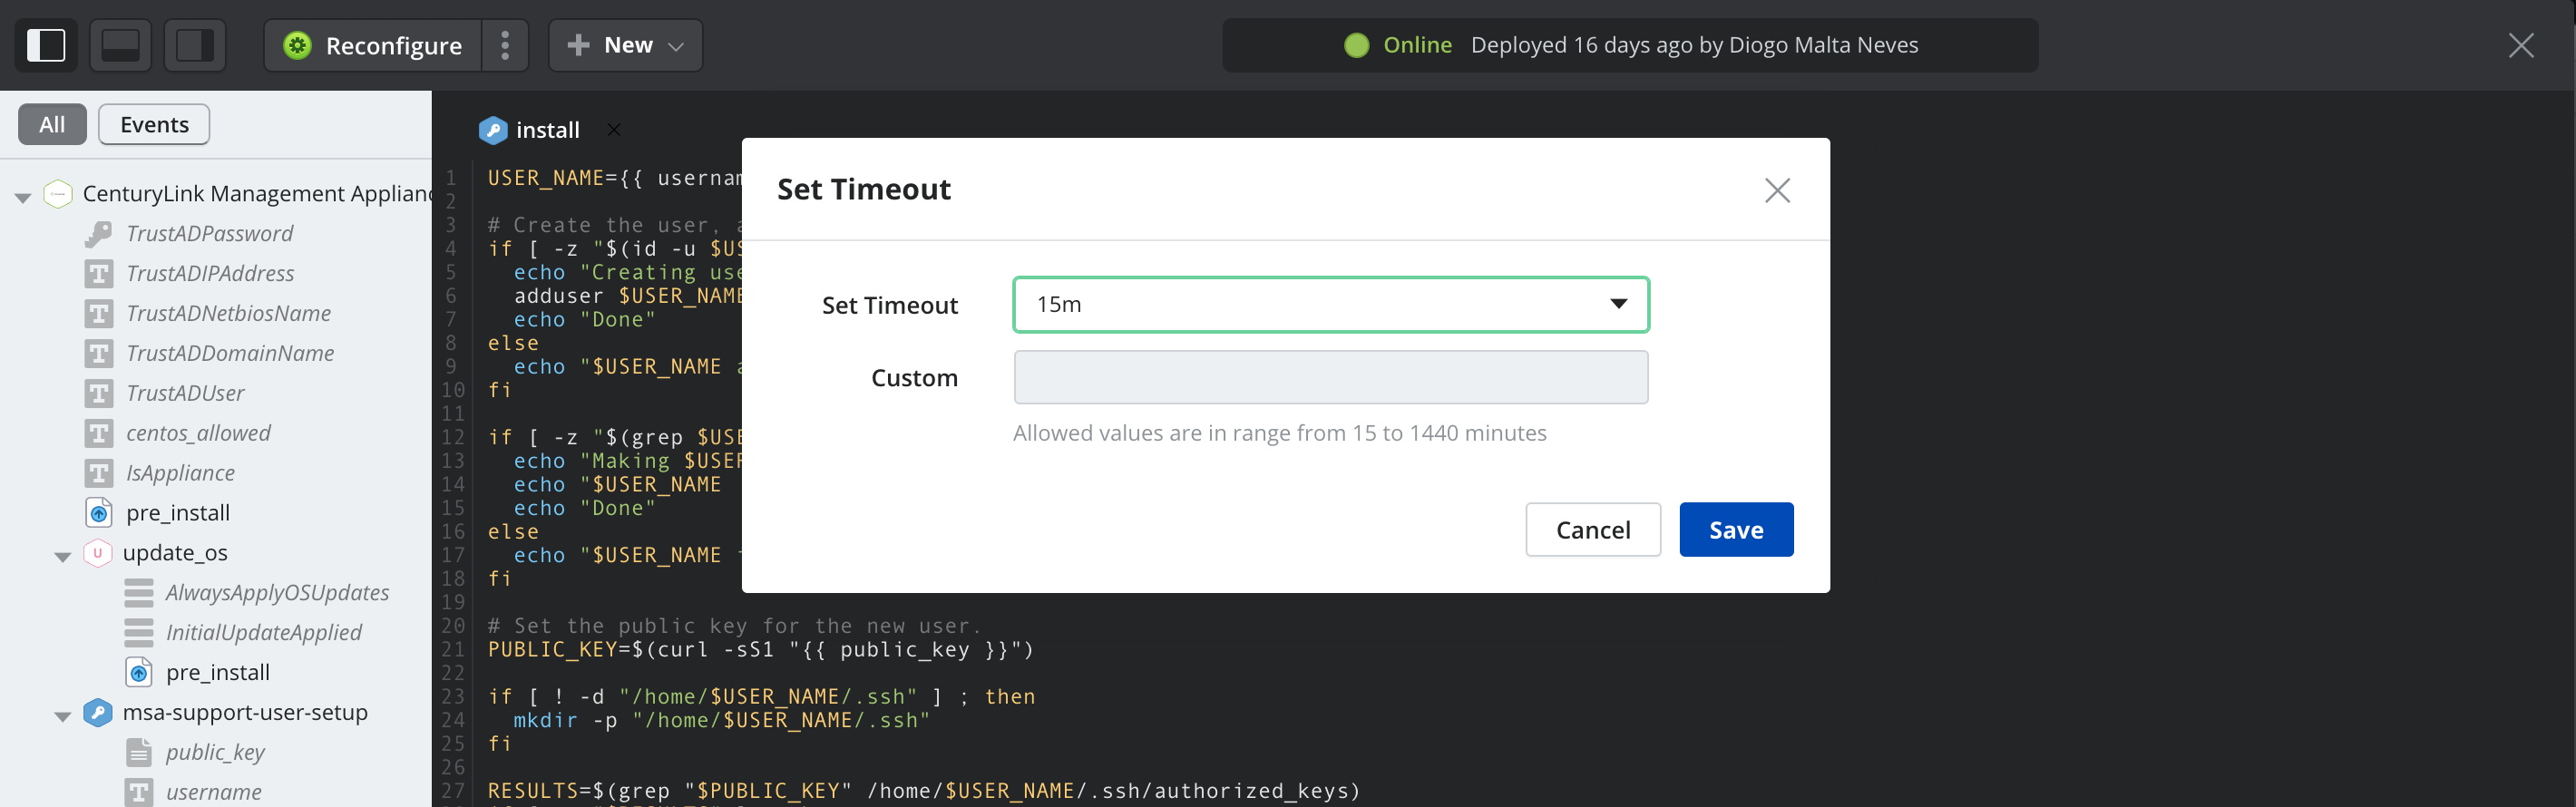 Set or modify execution timeout in lifecycle editor